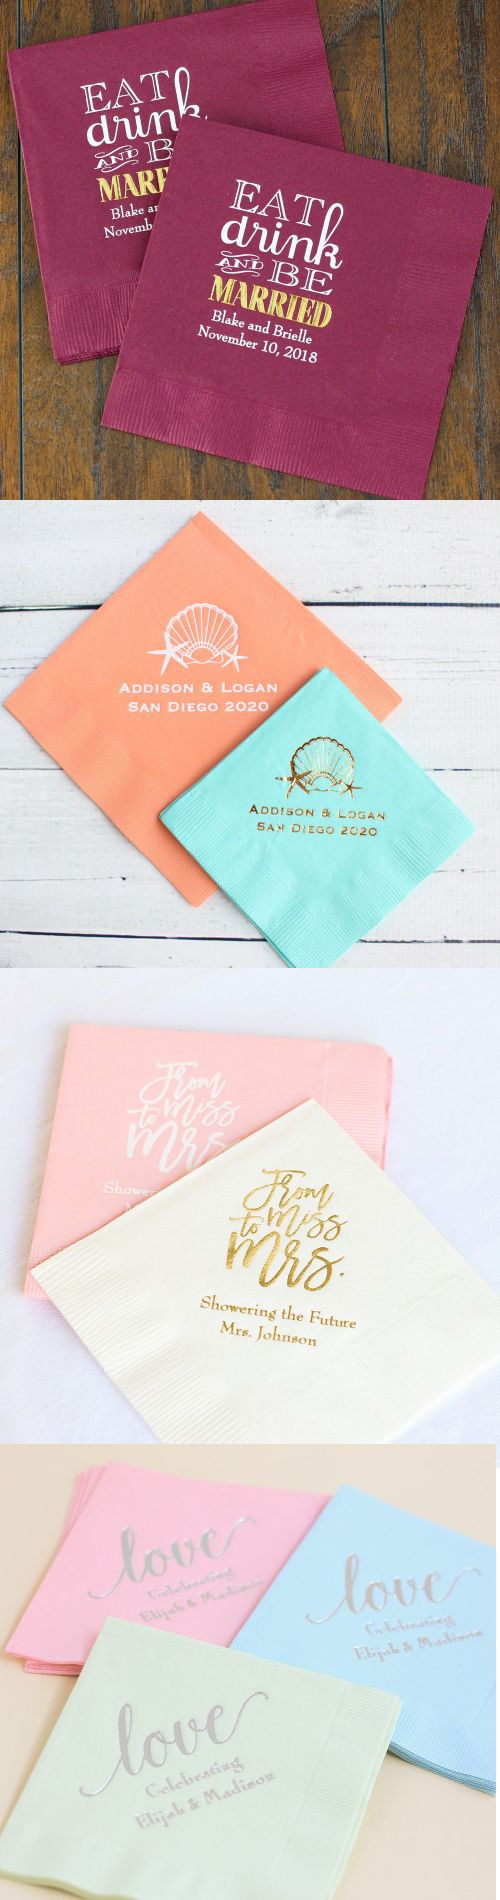 Beach wedding decoration ideas diy   Gorgeous Beach Wedding Decoration  Favor Ideas for a Perfect